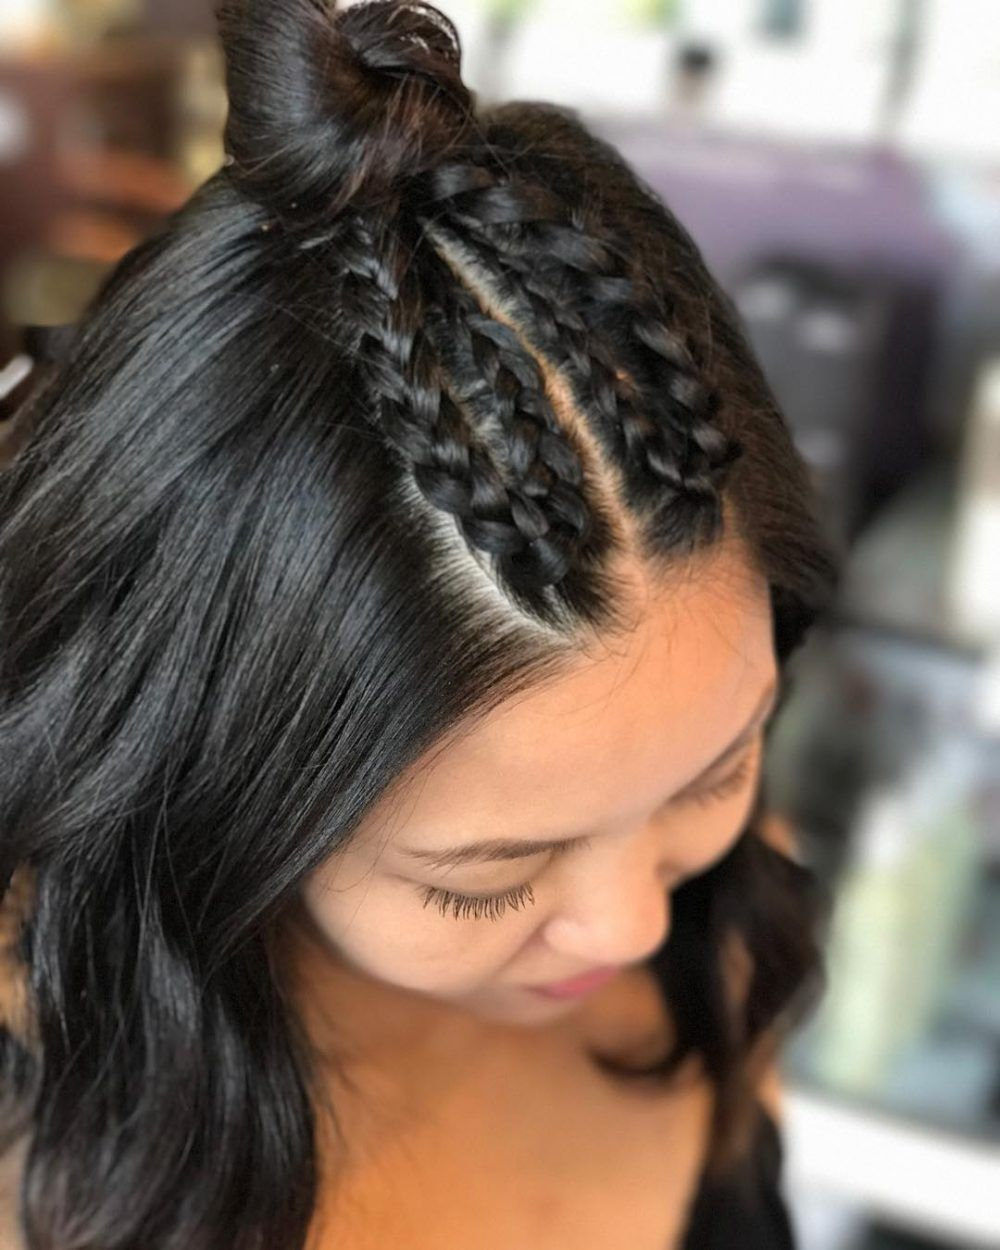 37 cute french braid hairstyles for 2019 | french braid